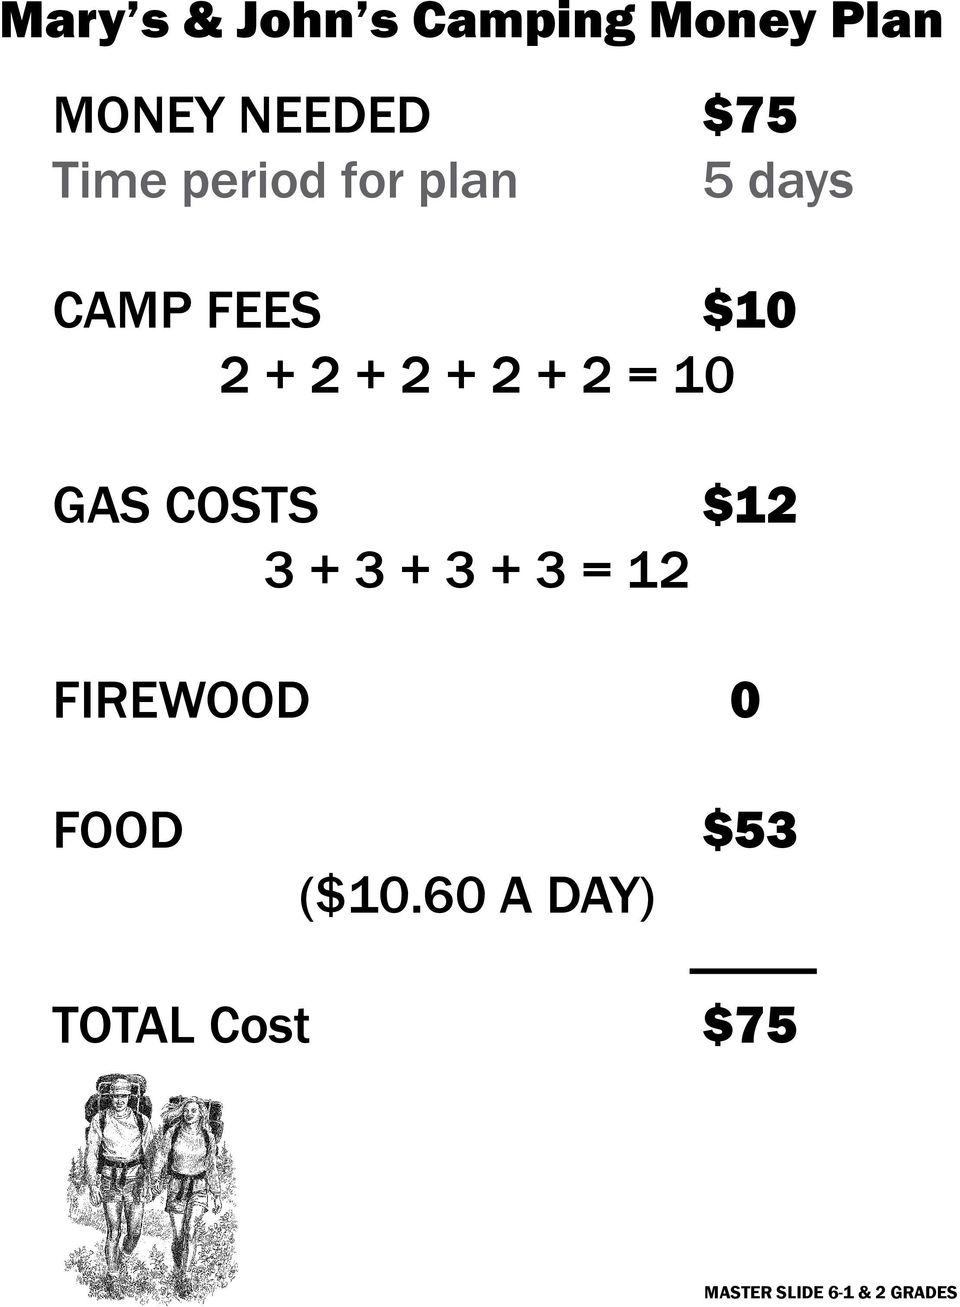 10 GAS COSTS $12 3 + 3 + 3 + 3 = 12 FIREWOOD 0 FOOD $53